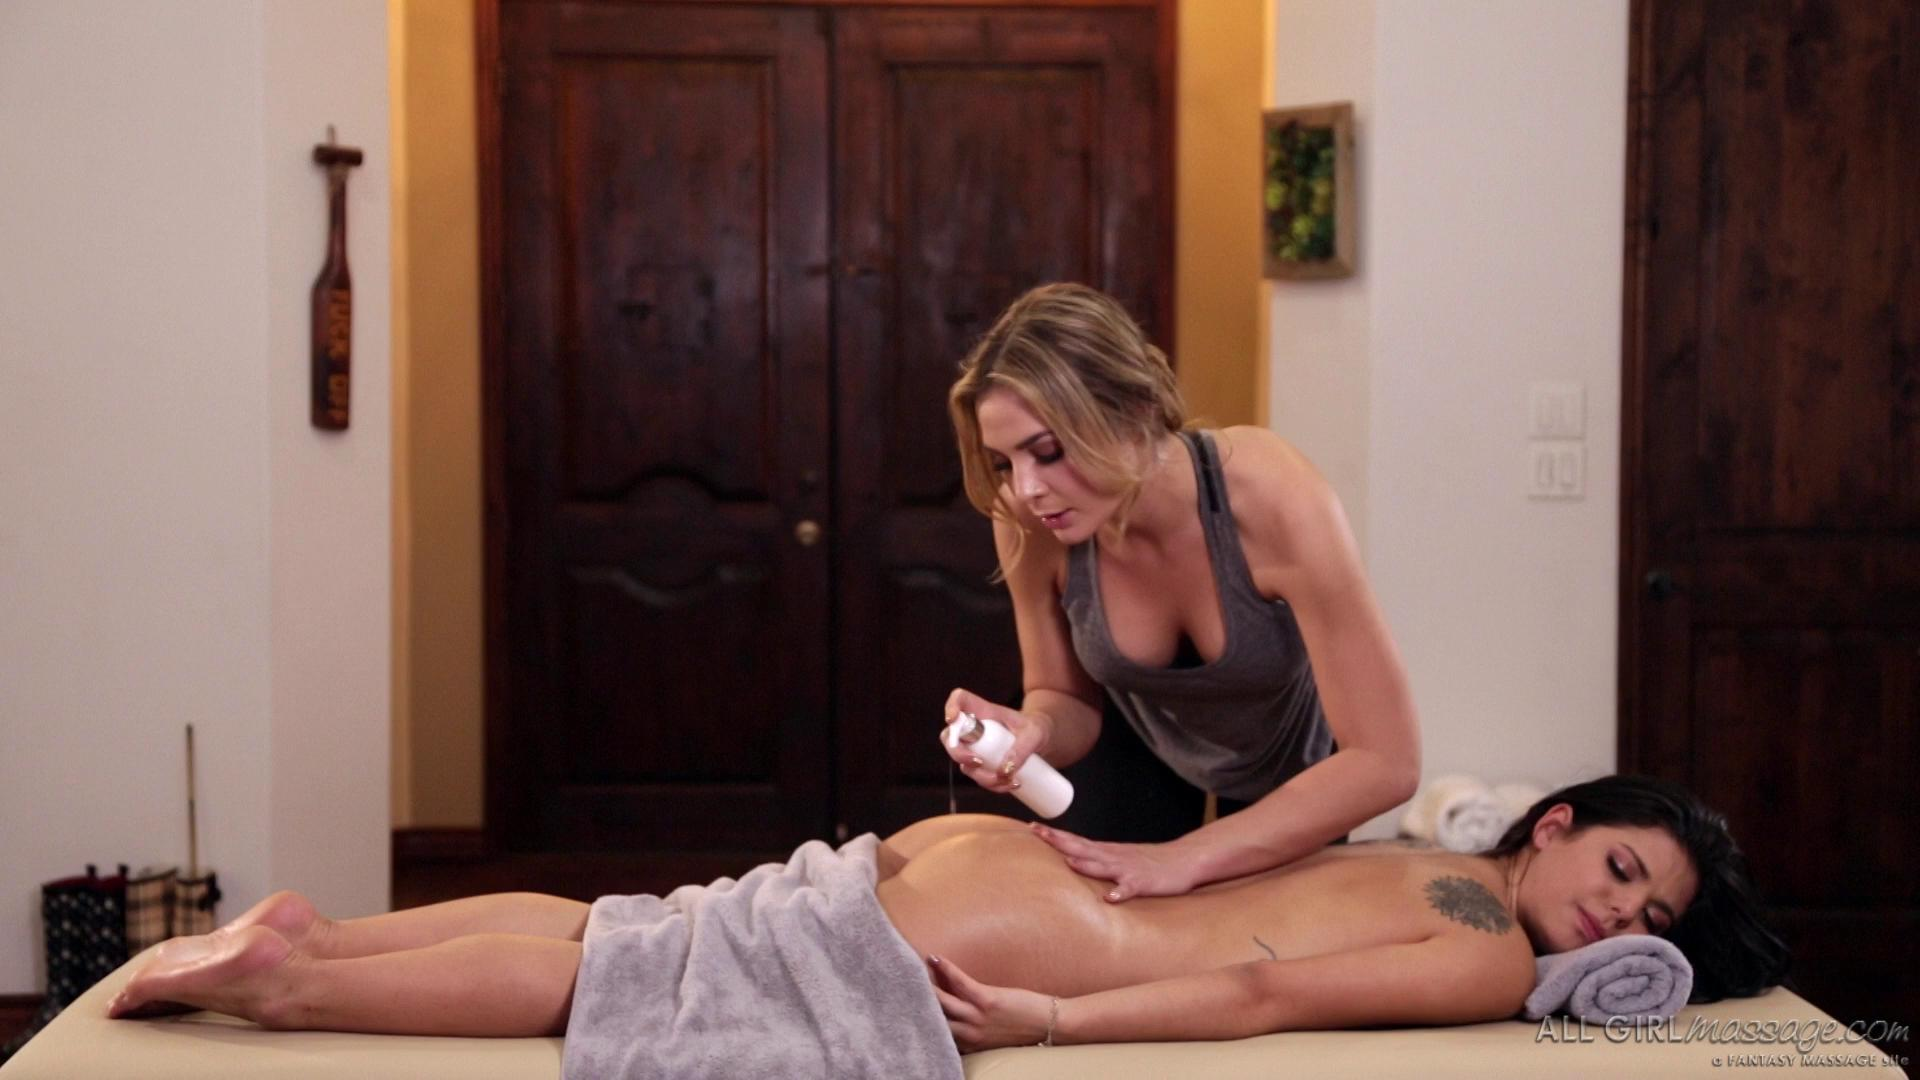 AllGirlMassage – Blair Williams And Gina Valentina Size Matters